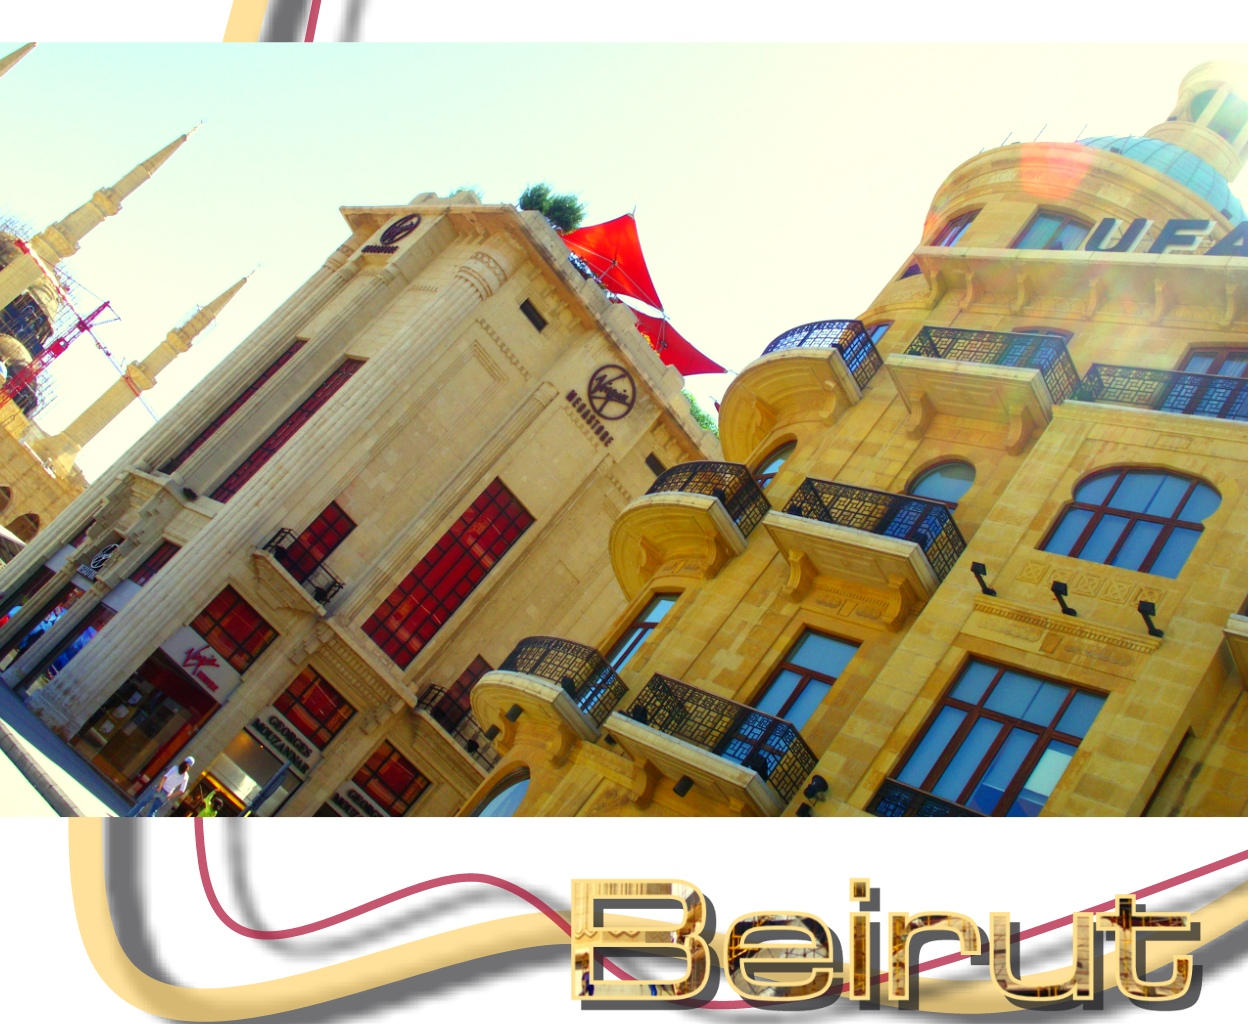 Beirut Downtown II by superjuju29